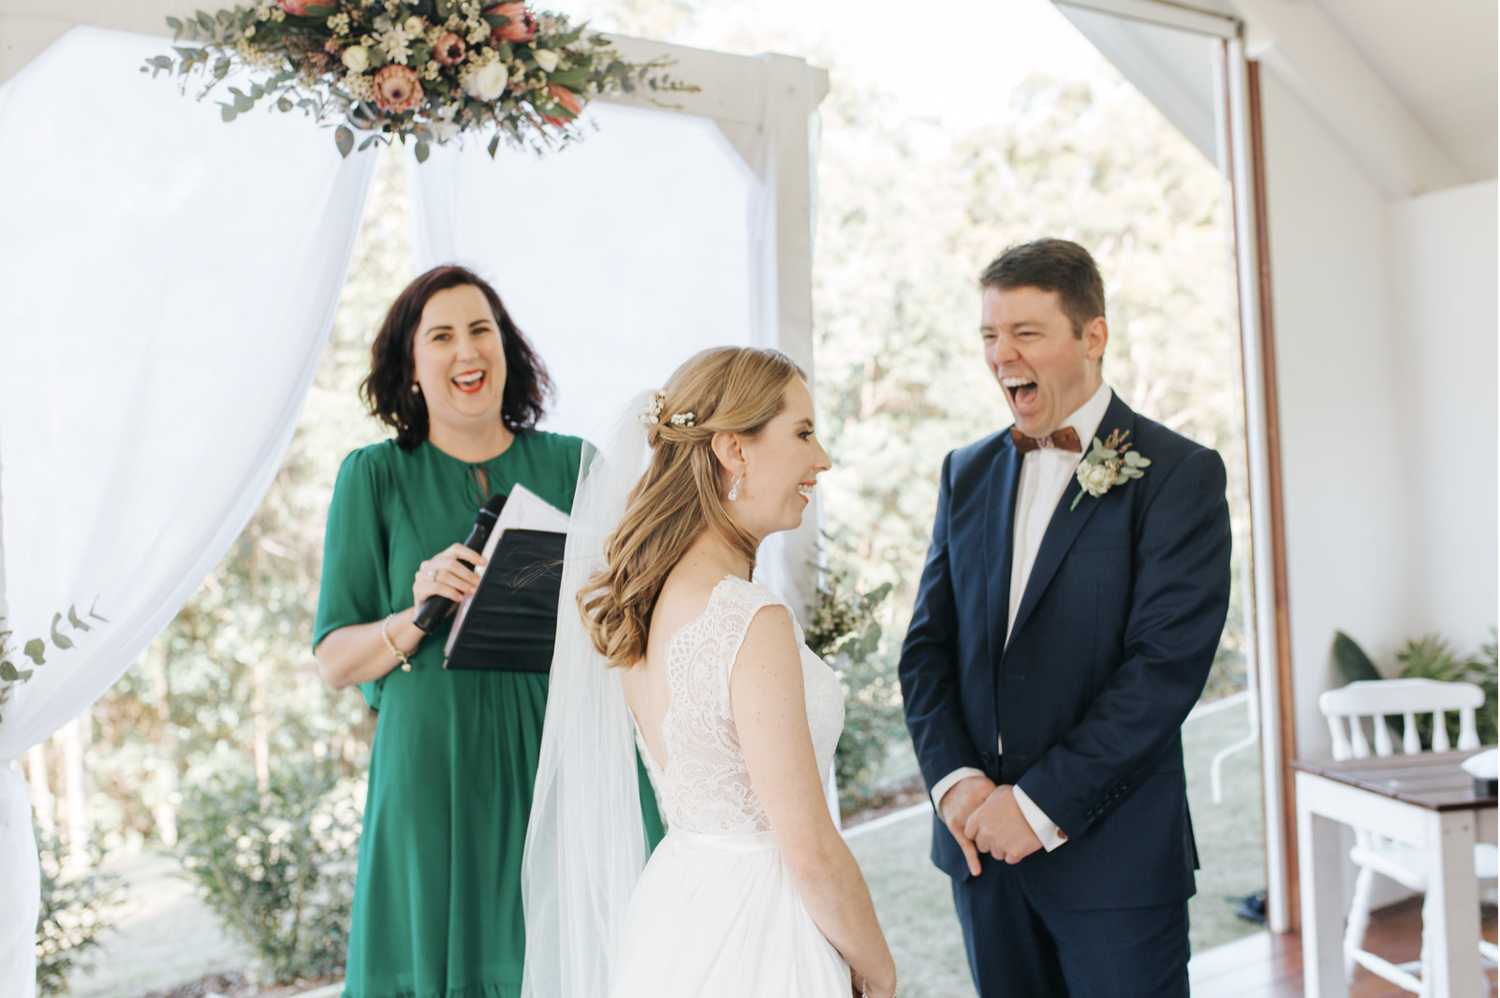 Elizabeth Jesse - Your ceremony should be the very best part of your day! It is the official party starter. I ensure that I understand my couple's vision and most importantly any needs or desires for their day.